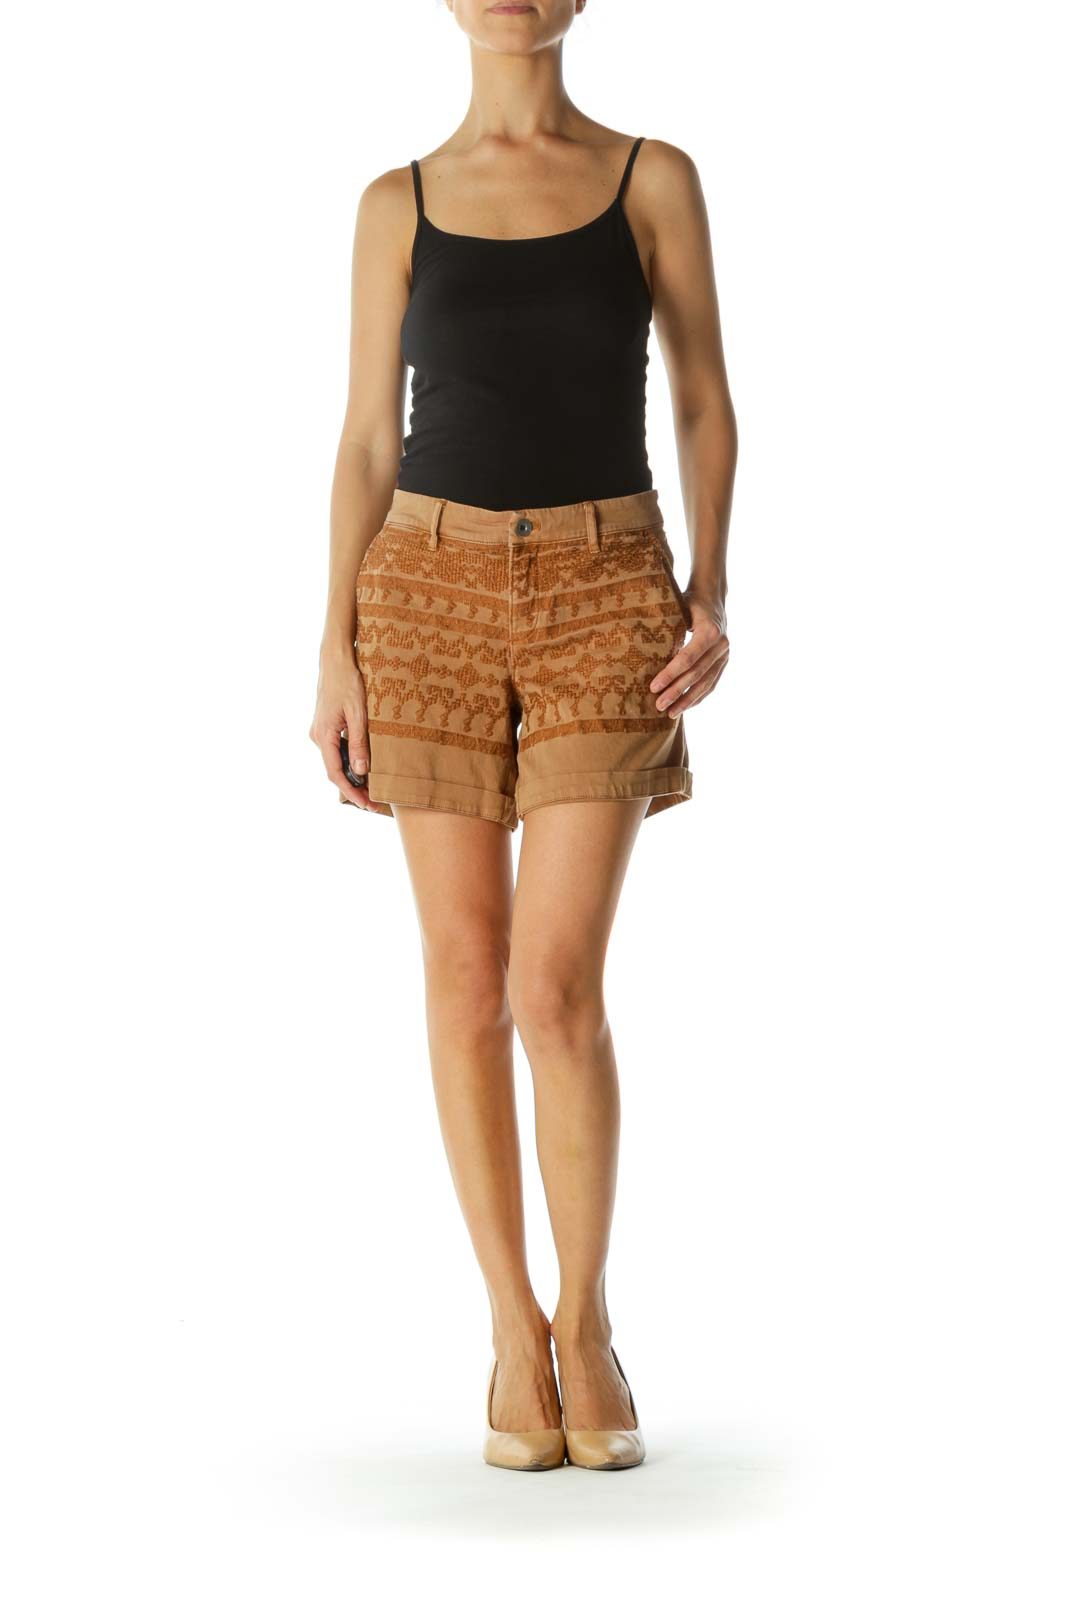 Tan Beige Cotton Soft Embroidered Pattern Stretch Pocketed Shorts